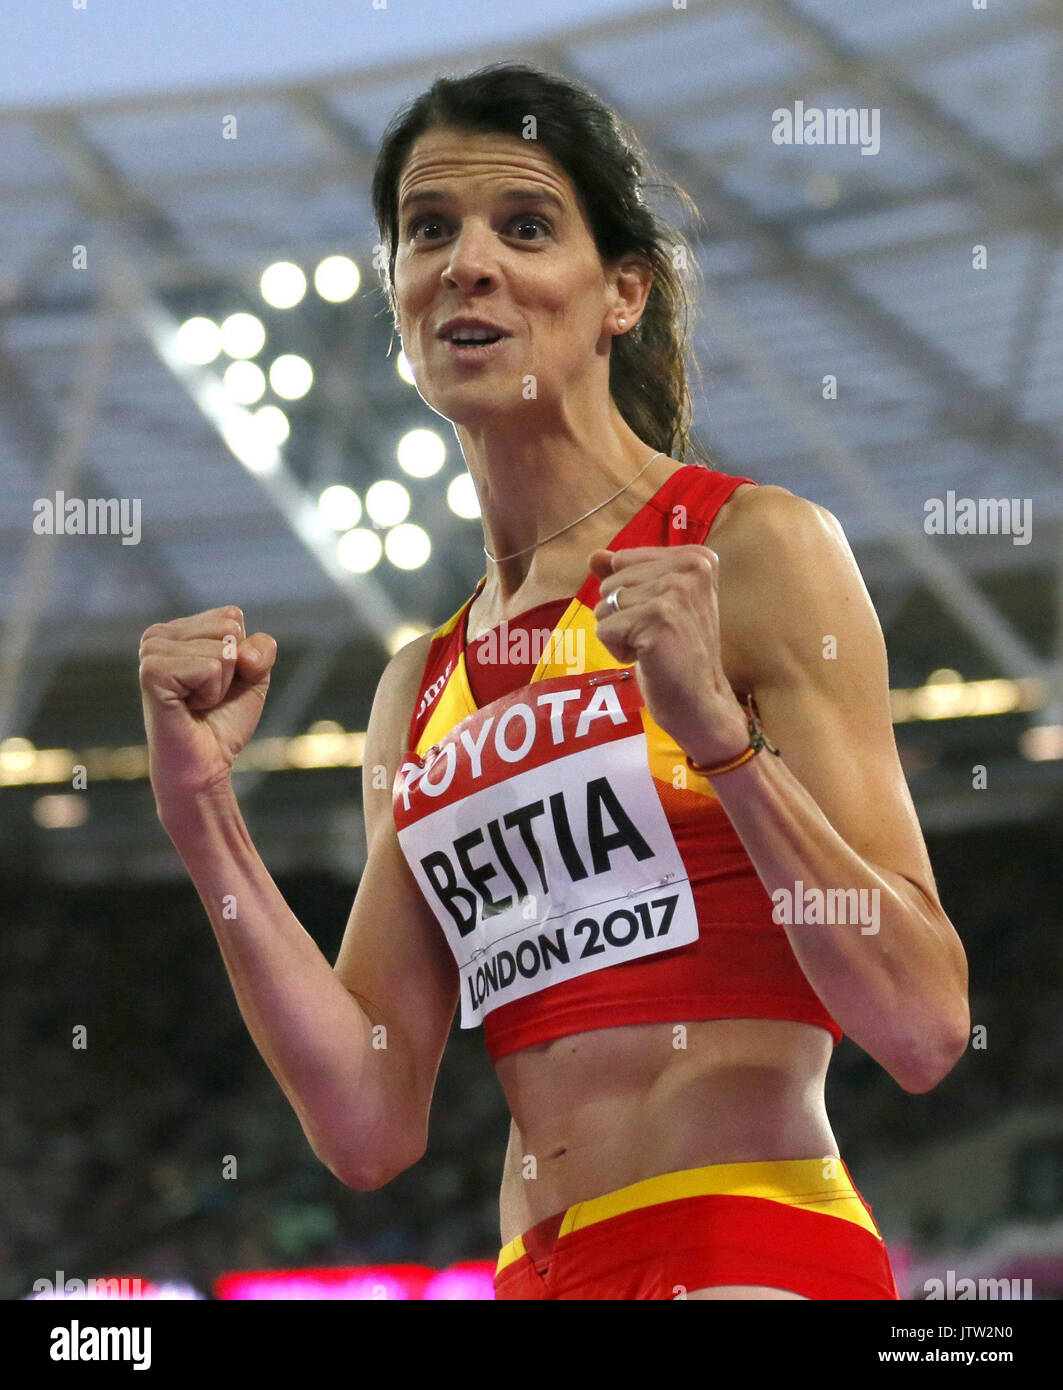 London, UK. 10th August, 2017. Spanish Ruth Beitia after a jump of the World Athletics Championships 2017 in London, Stock Photo